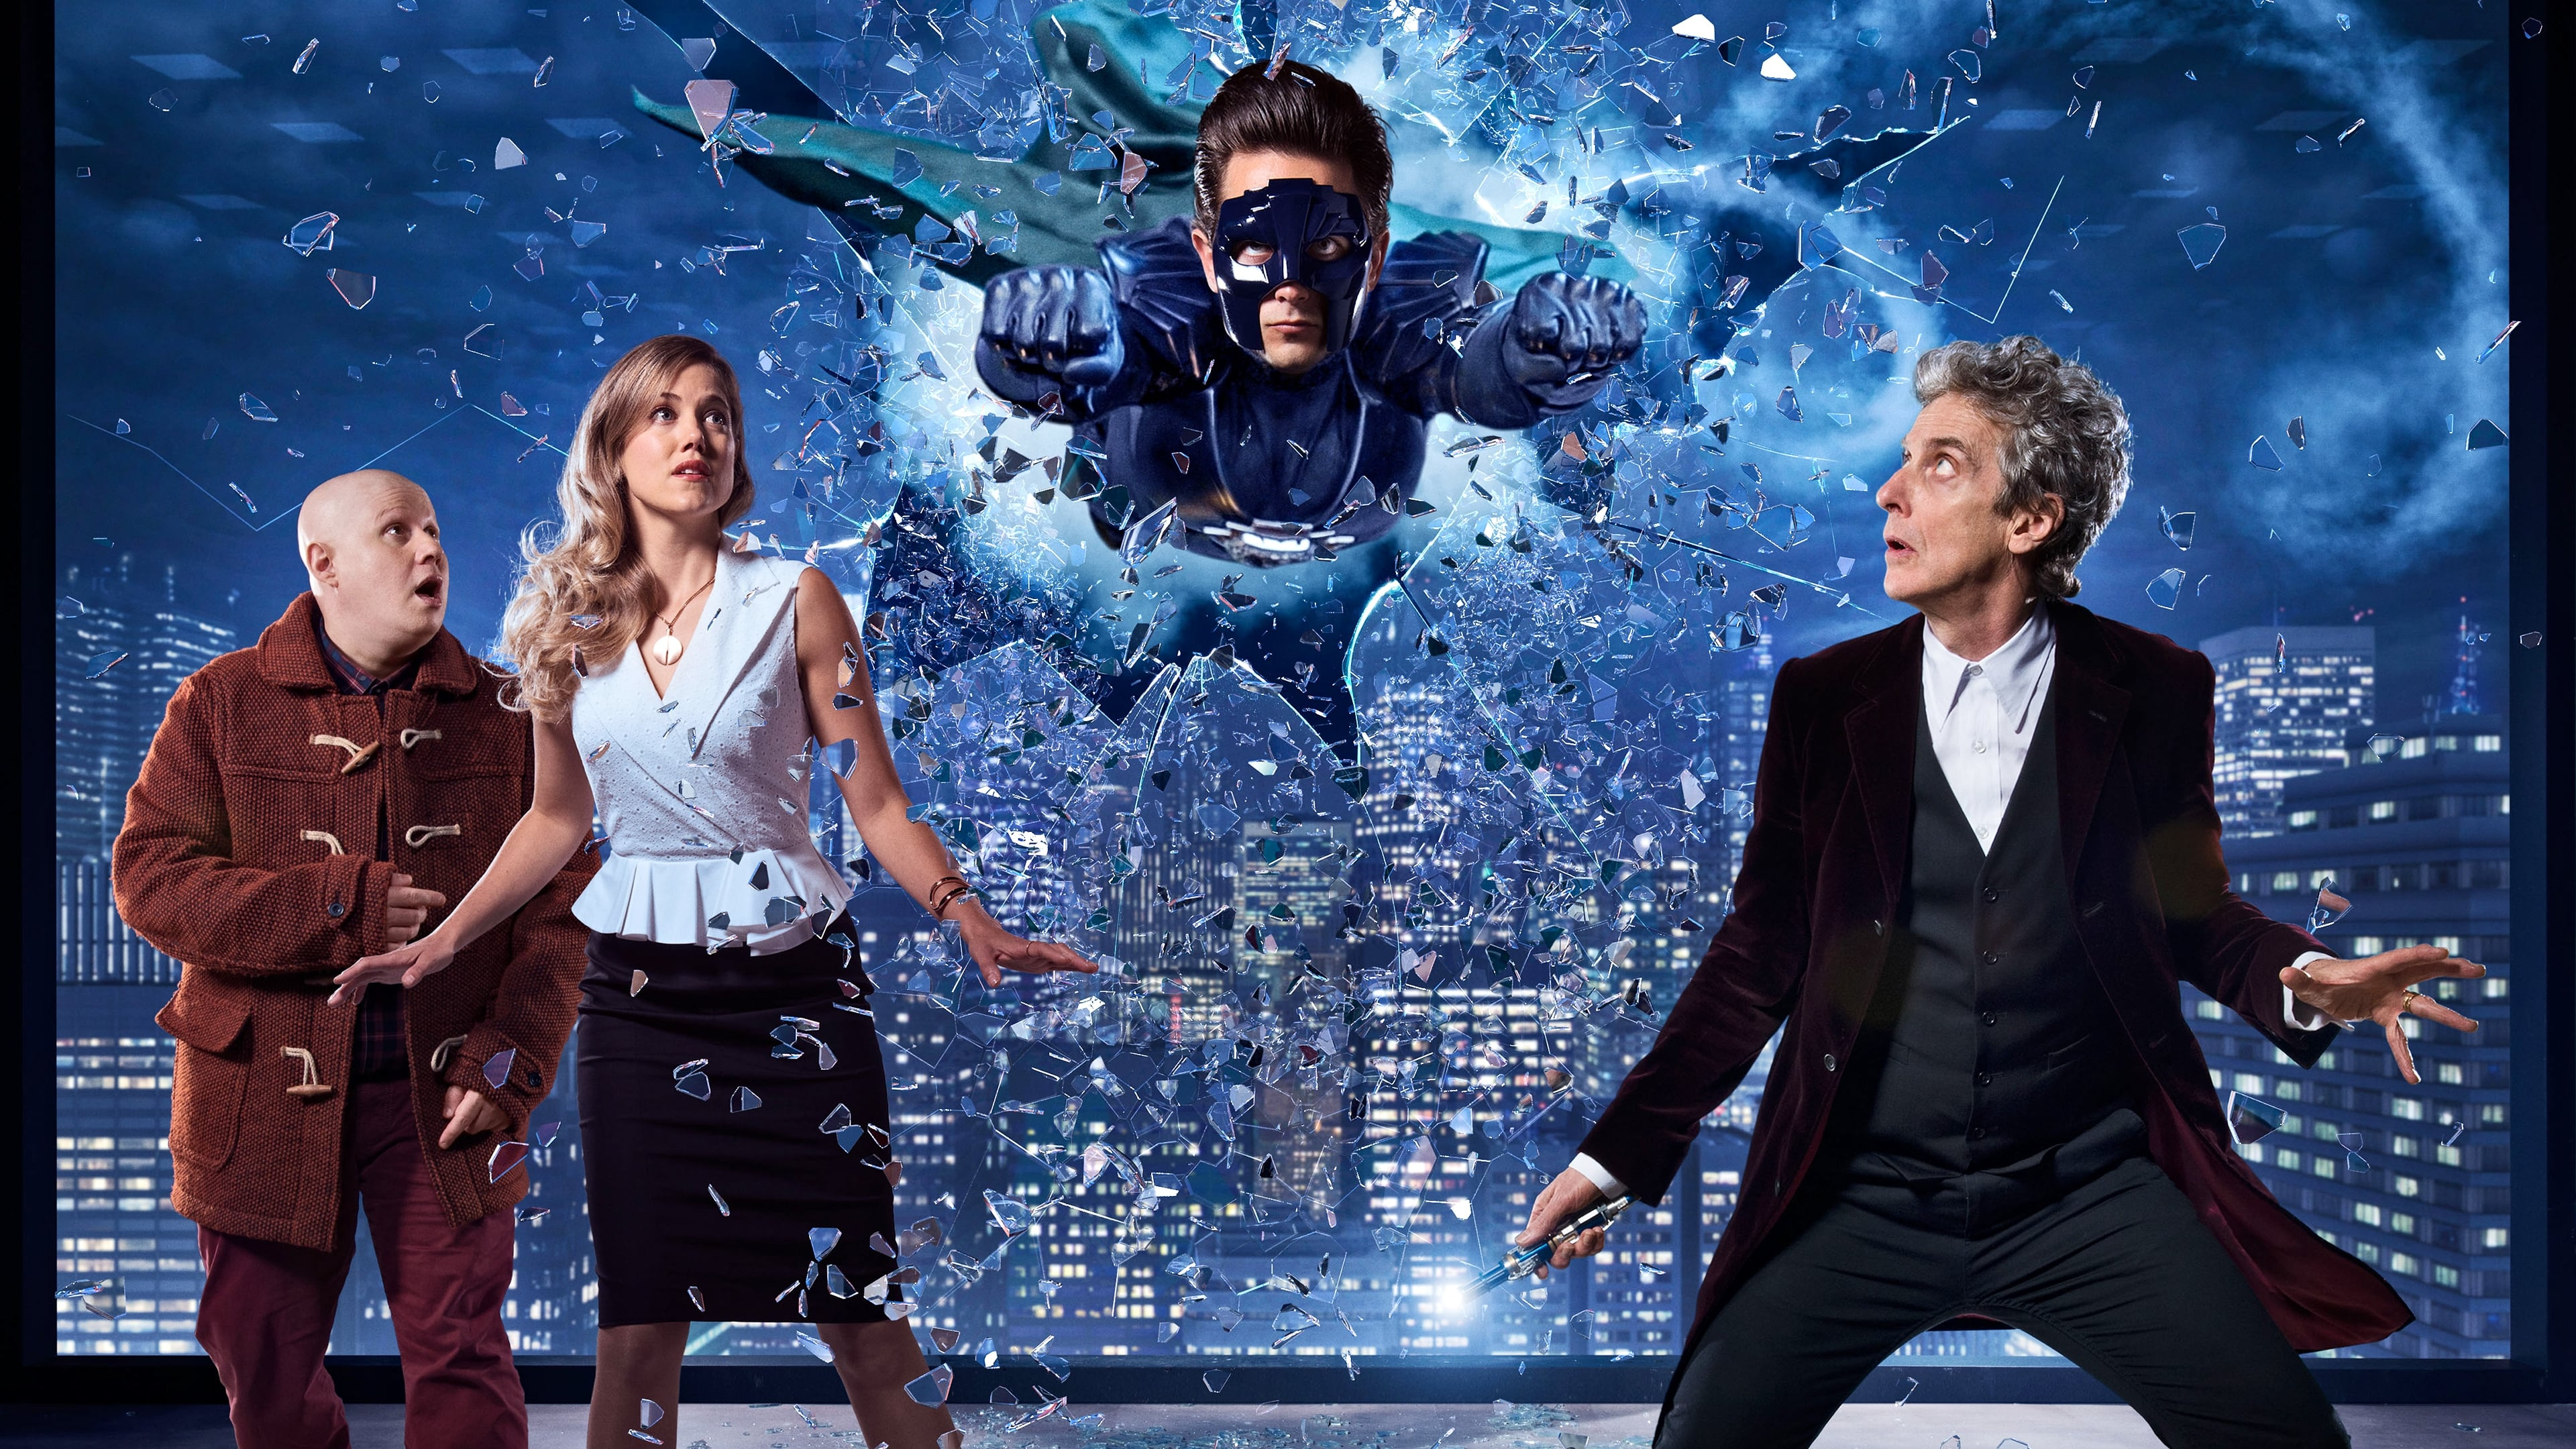 Doctor Who - Season 0 Episode 149 : The Return of Doctor Mysterio